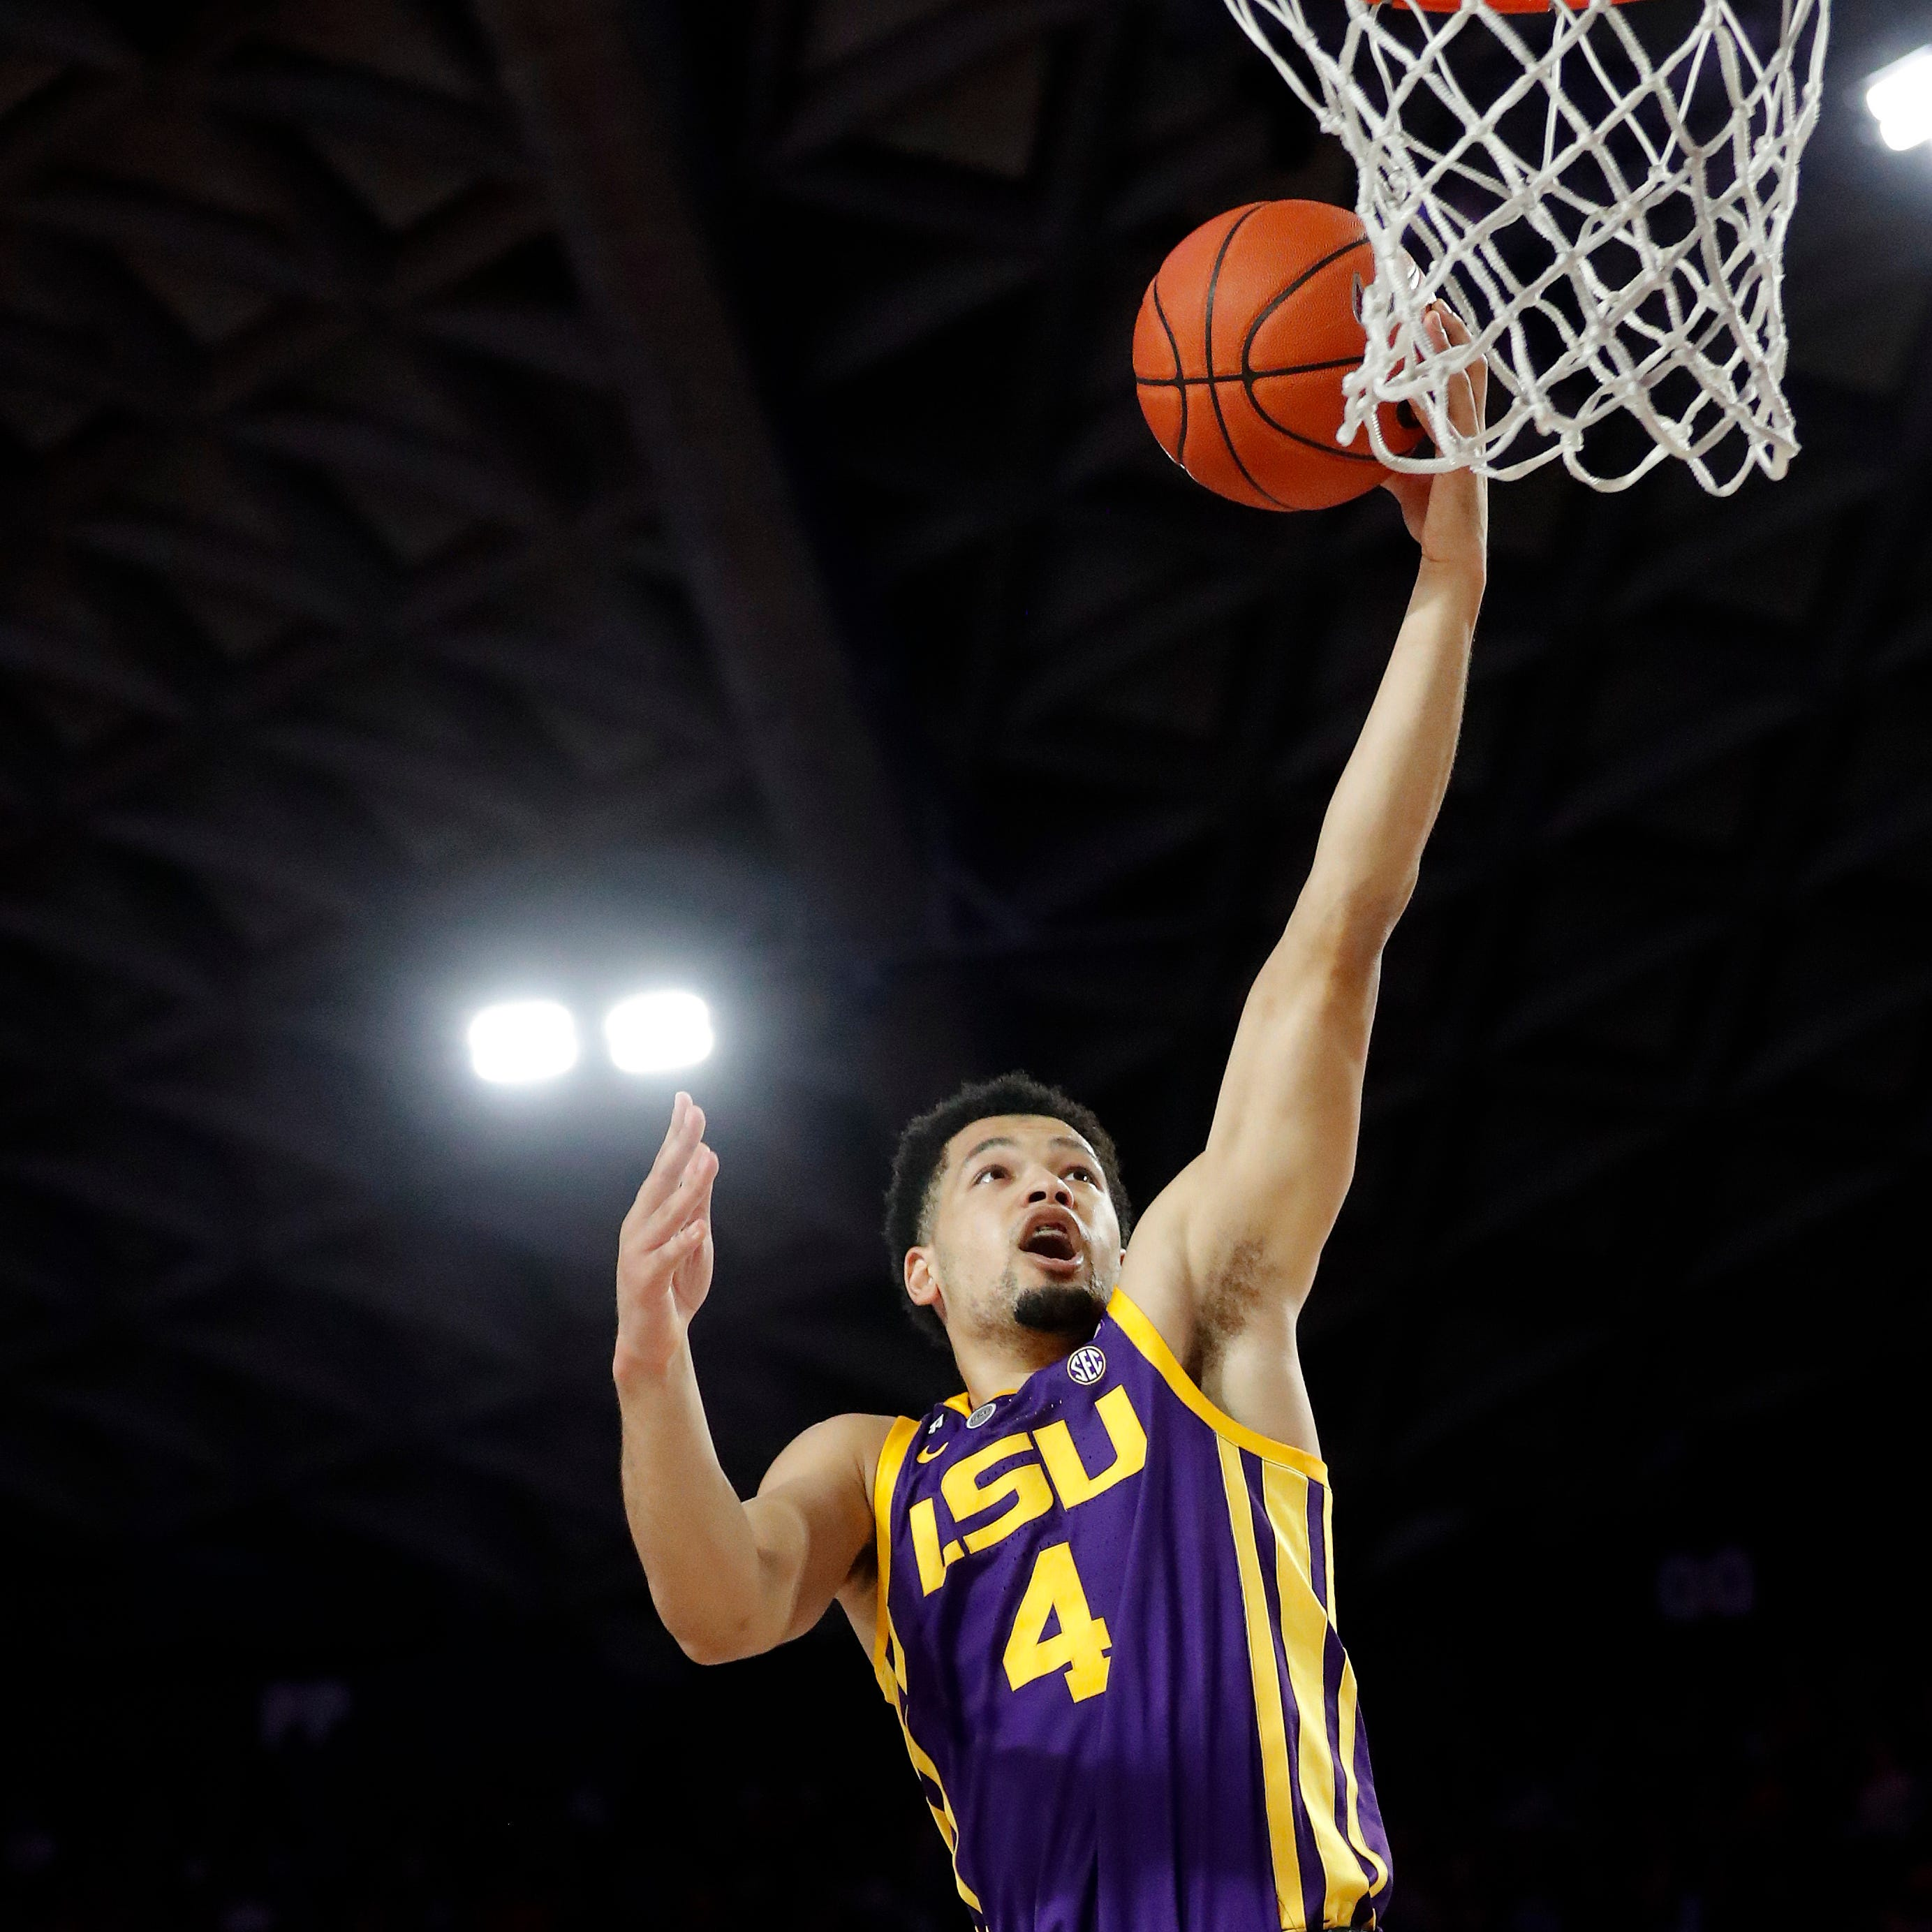 How to watch LSU vs. Florida men's basketball on TV, live stream